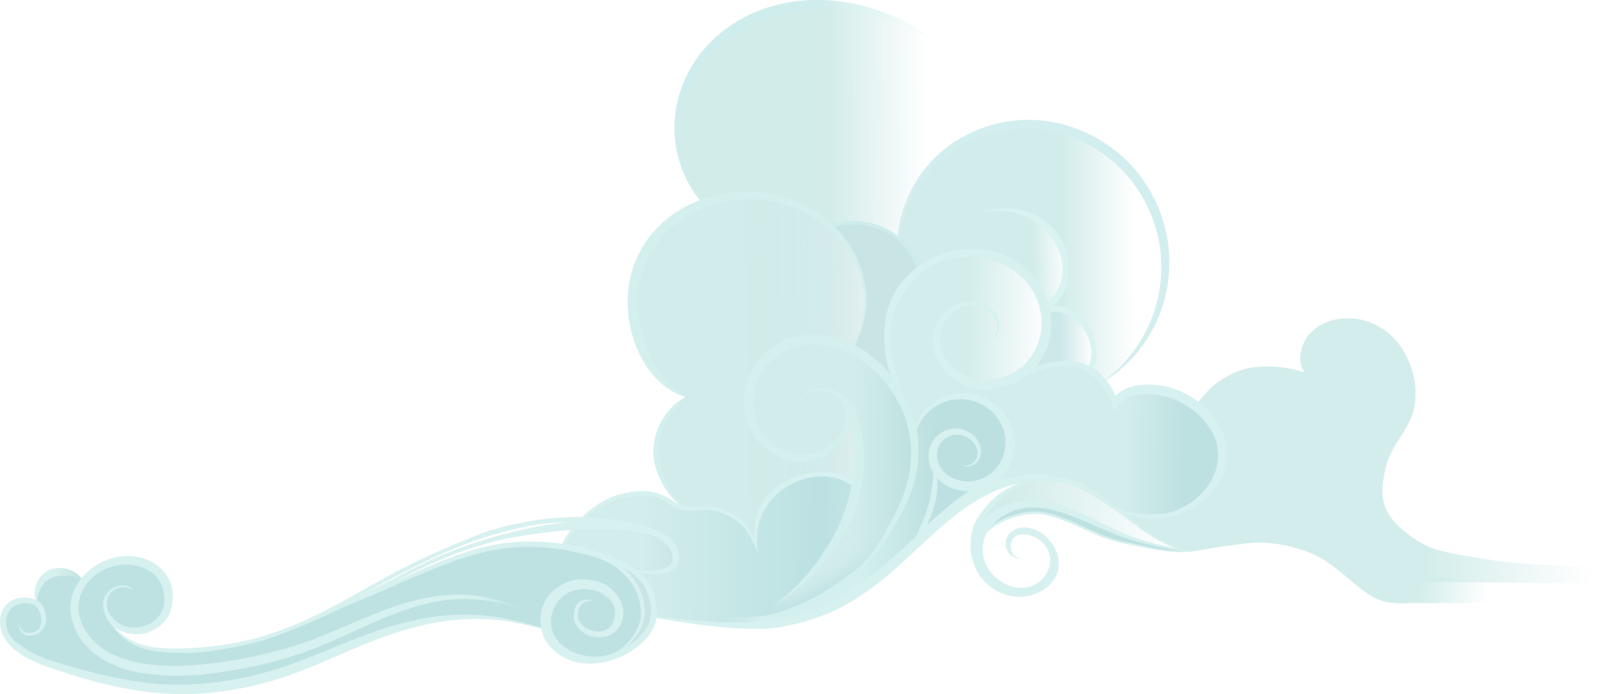 Clouds and sky on. Cloud clipart fluffy cloud